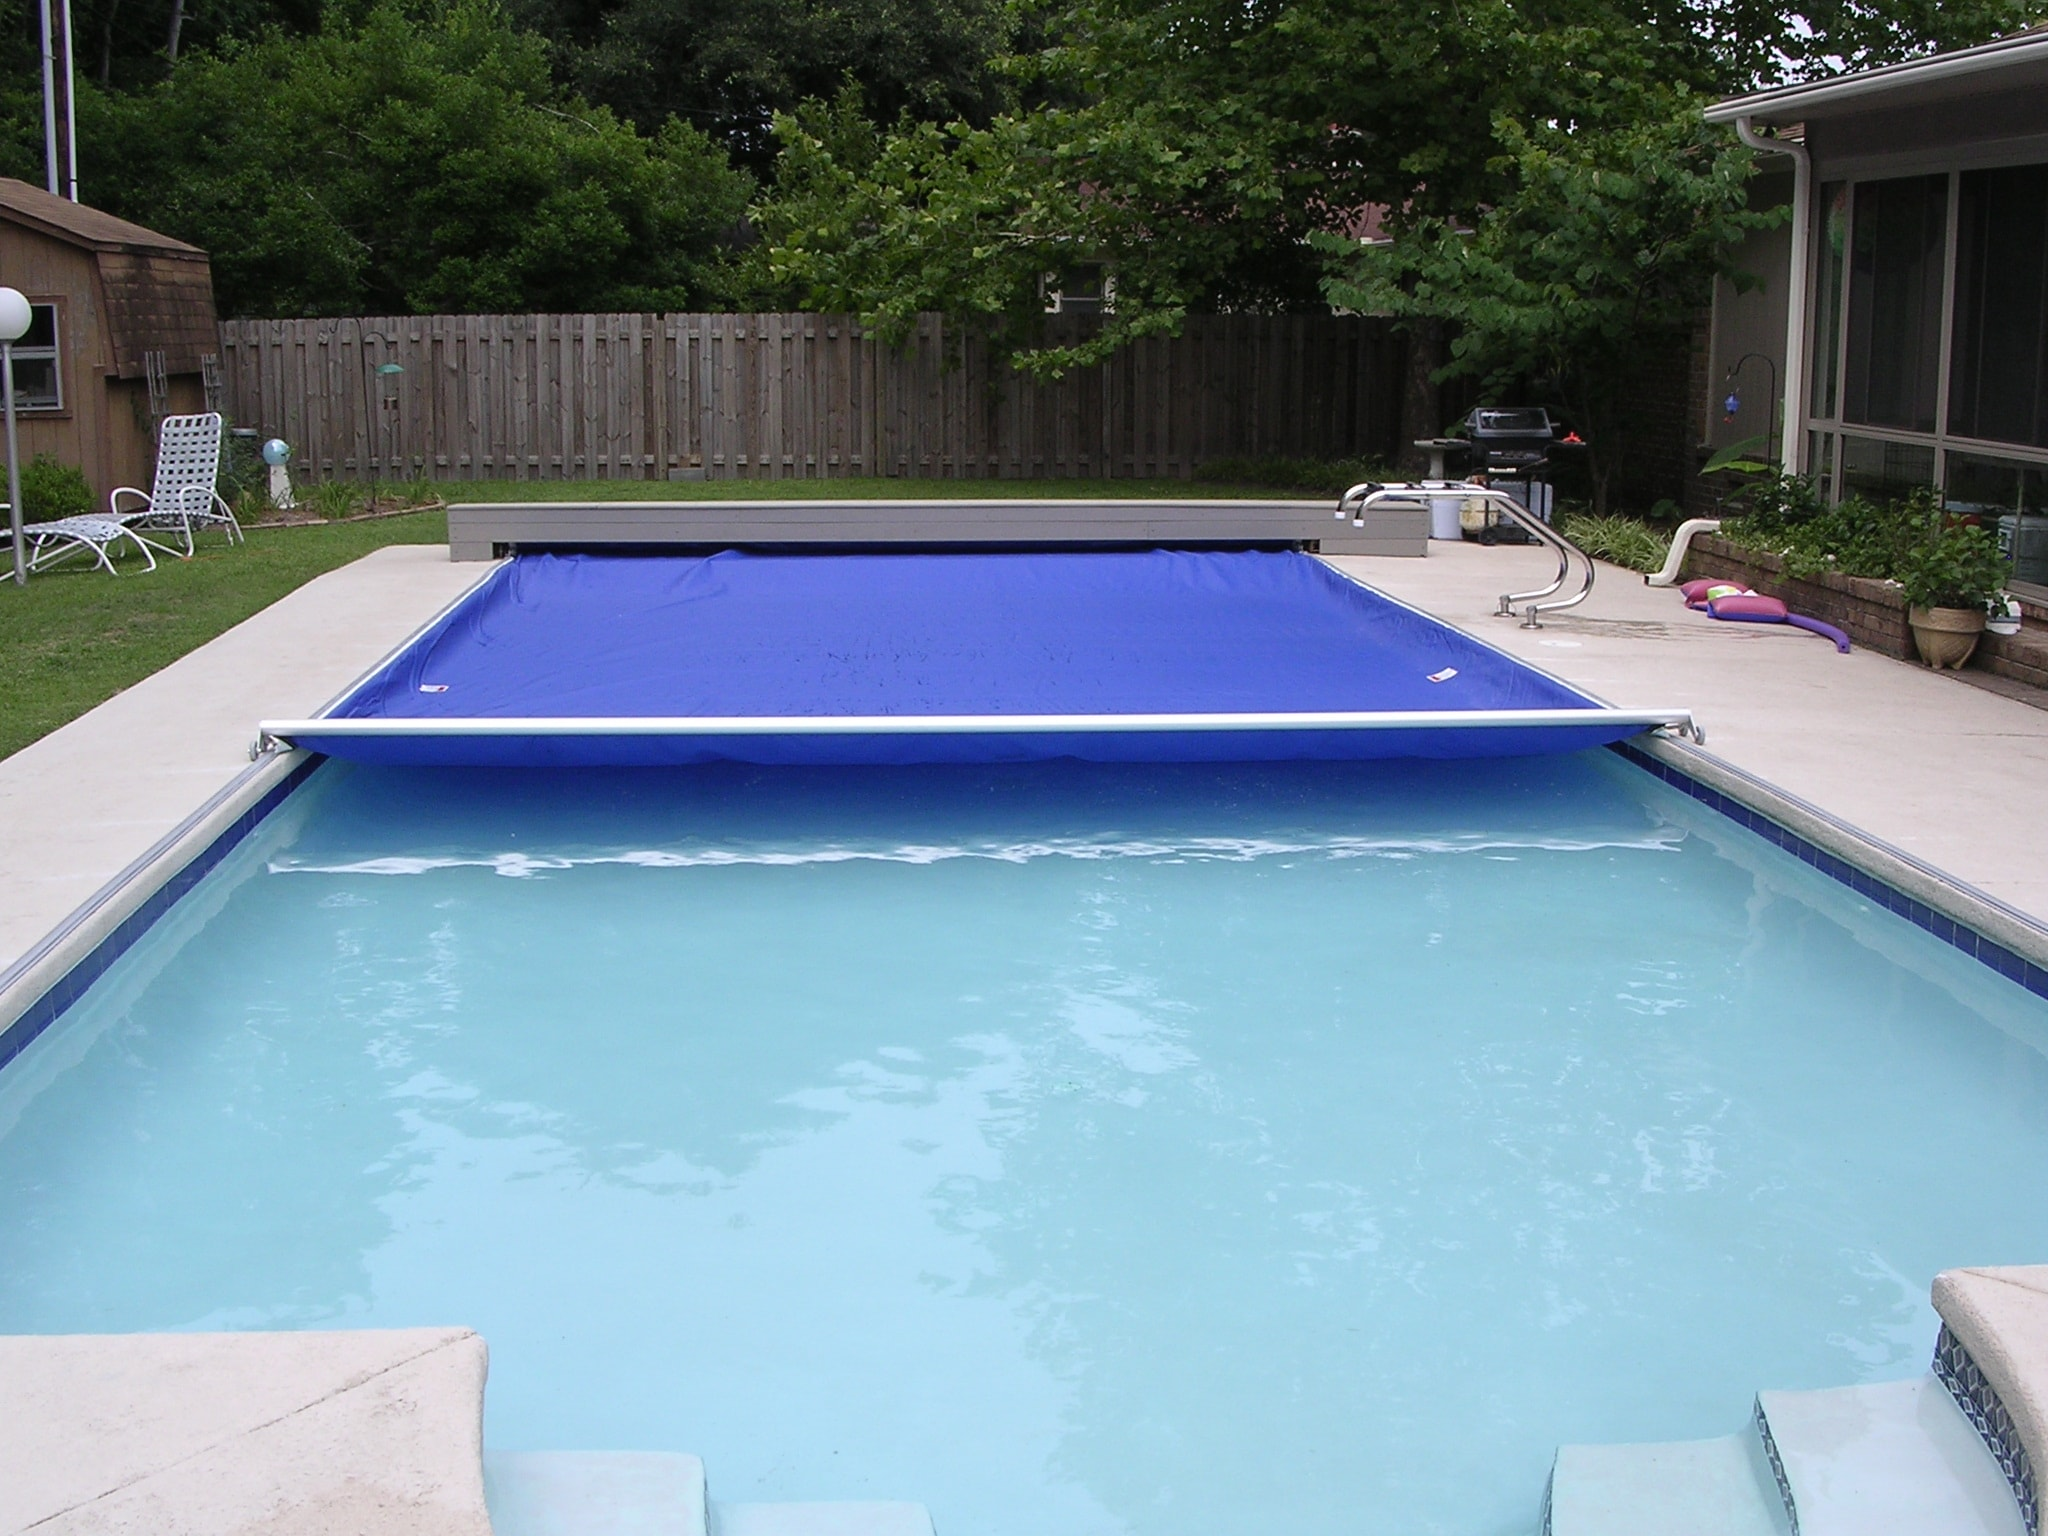 PCS-Automatic-Safety-Pool-Cover-Concealed-by-Bench.jpg